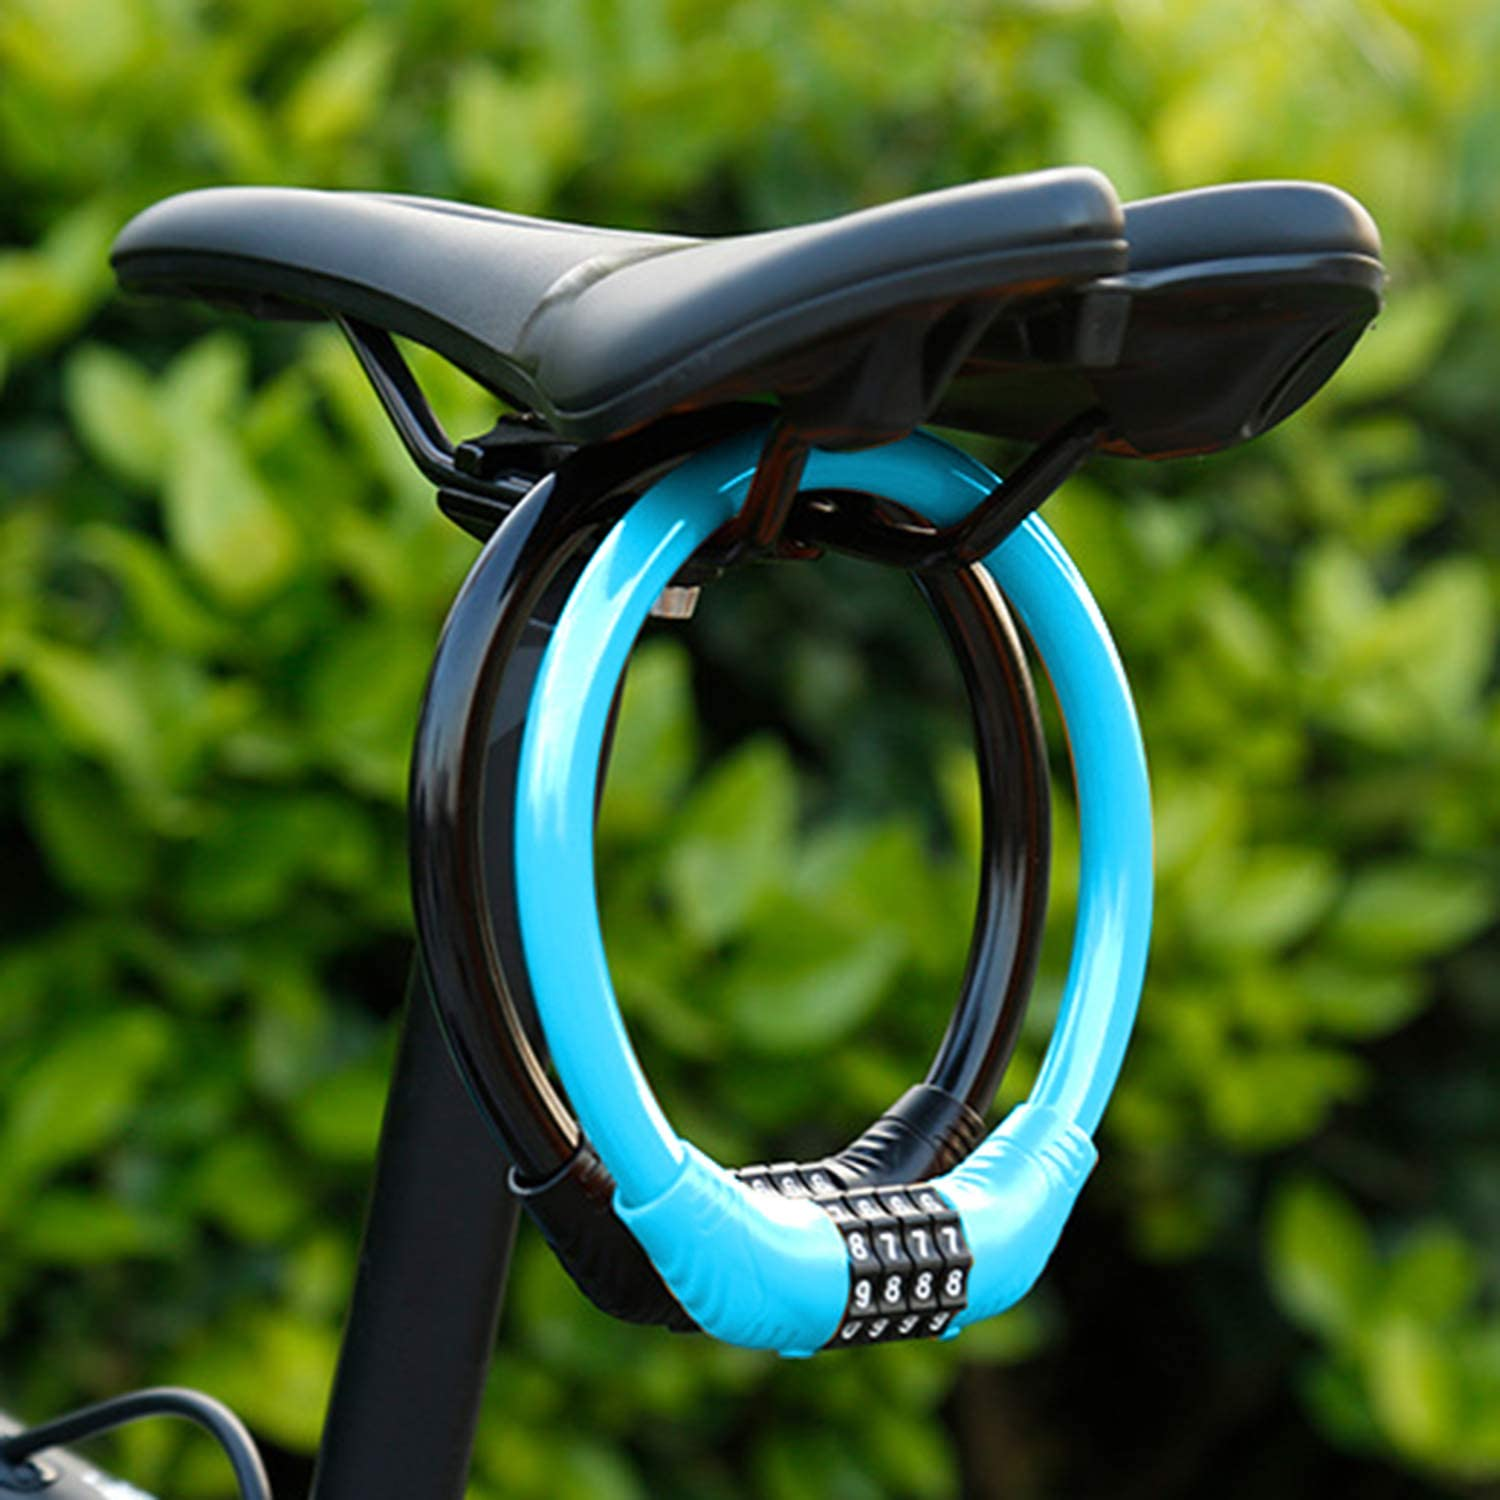 Candado de cable para bicicleta QKURT Security Bike Lock 4 d/ígitos